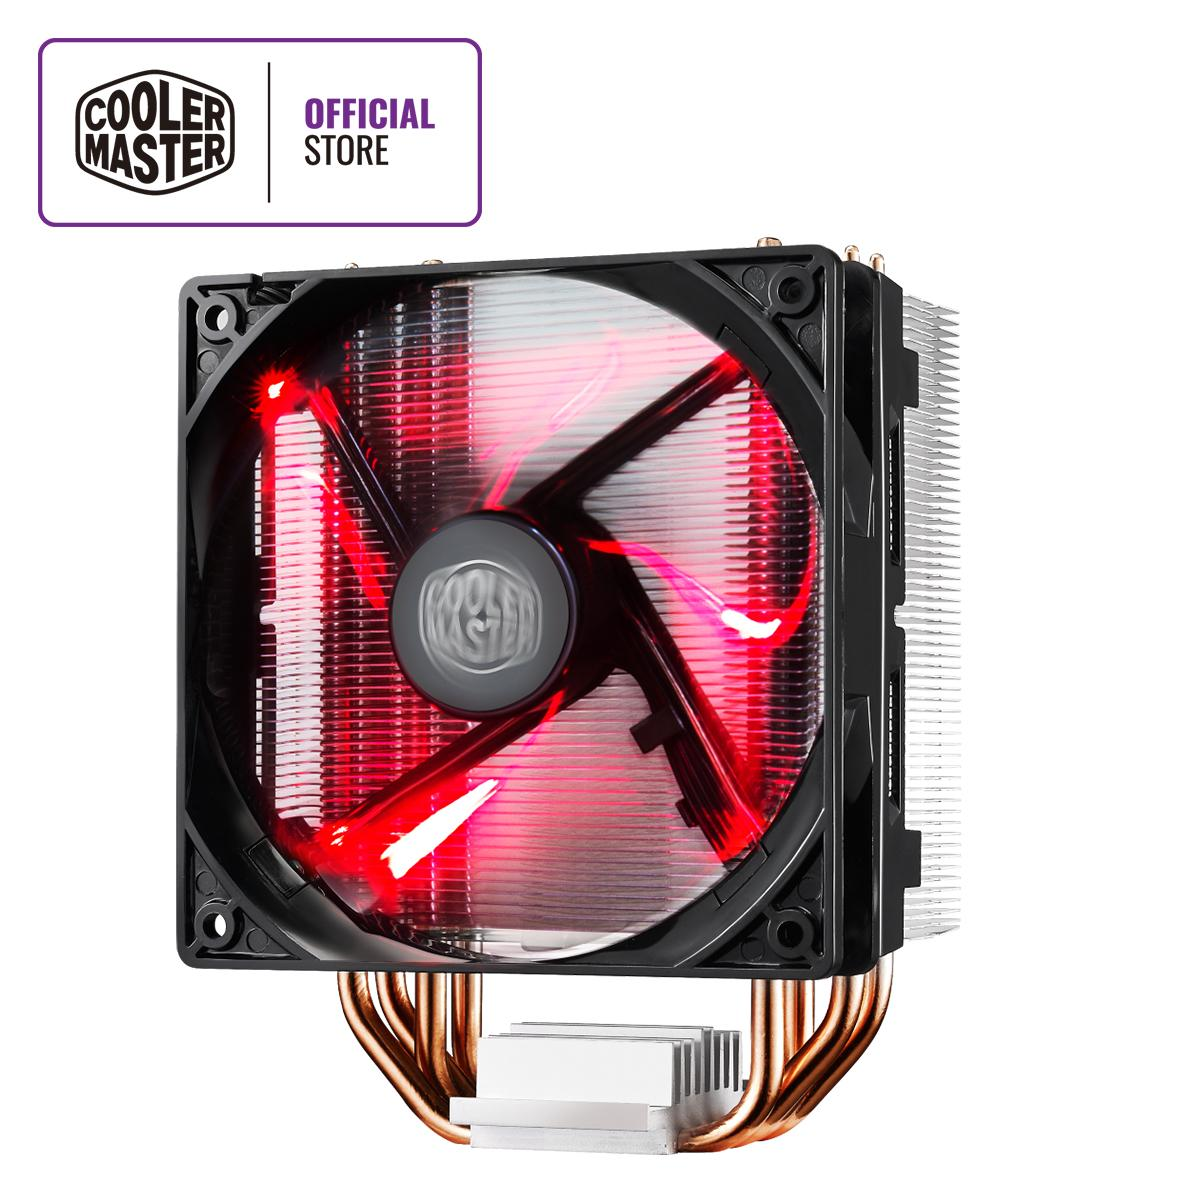 Latest Cooler Master Computer Heatsinks Products | Enjoy Huge